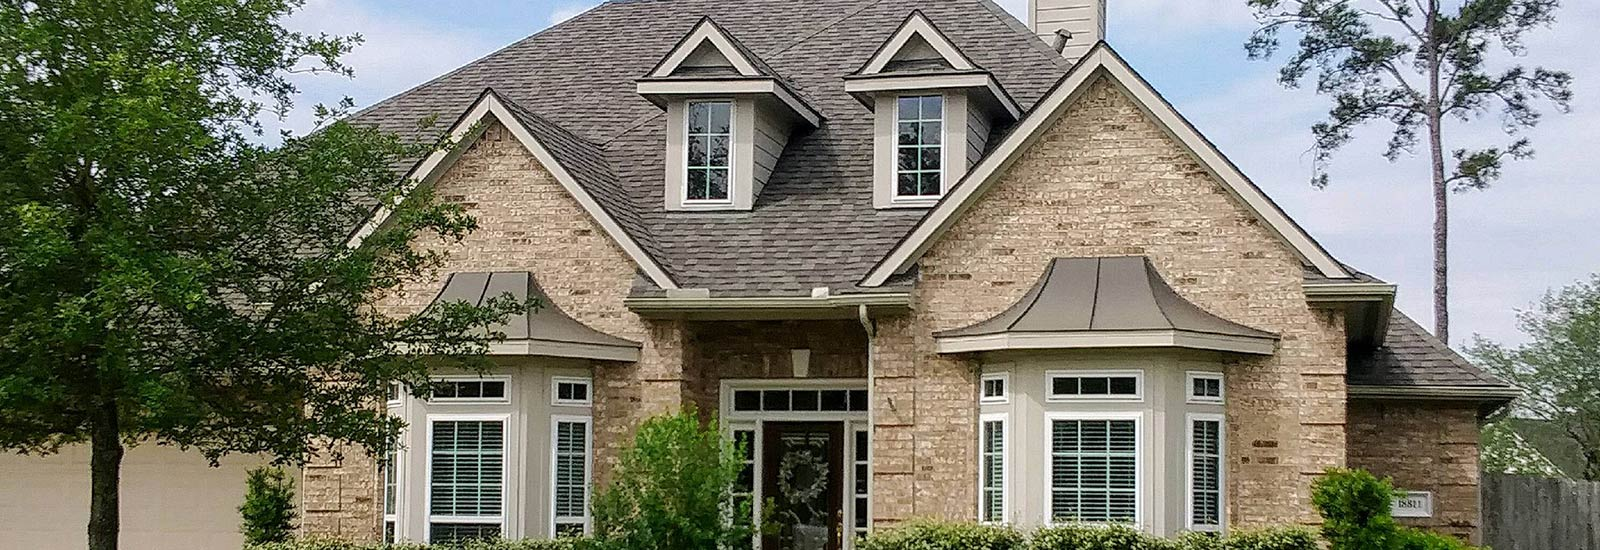 Residential Roofing Repair In Jersey Village Tx